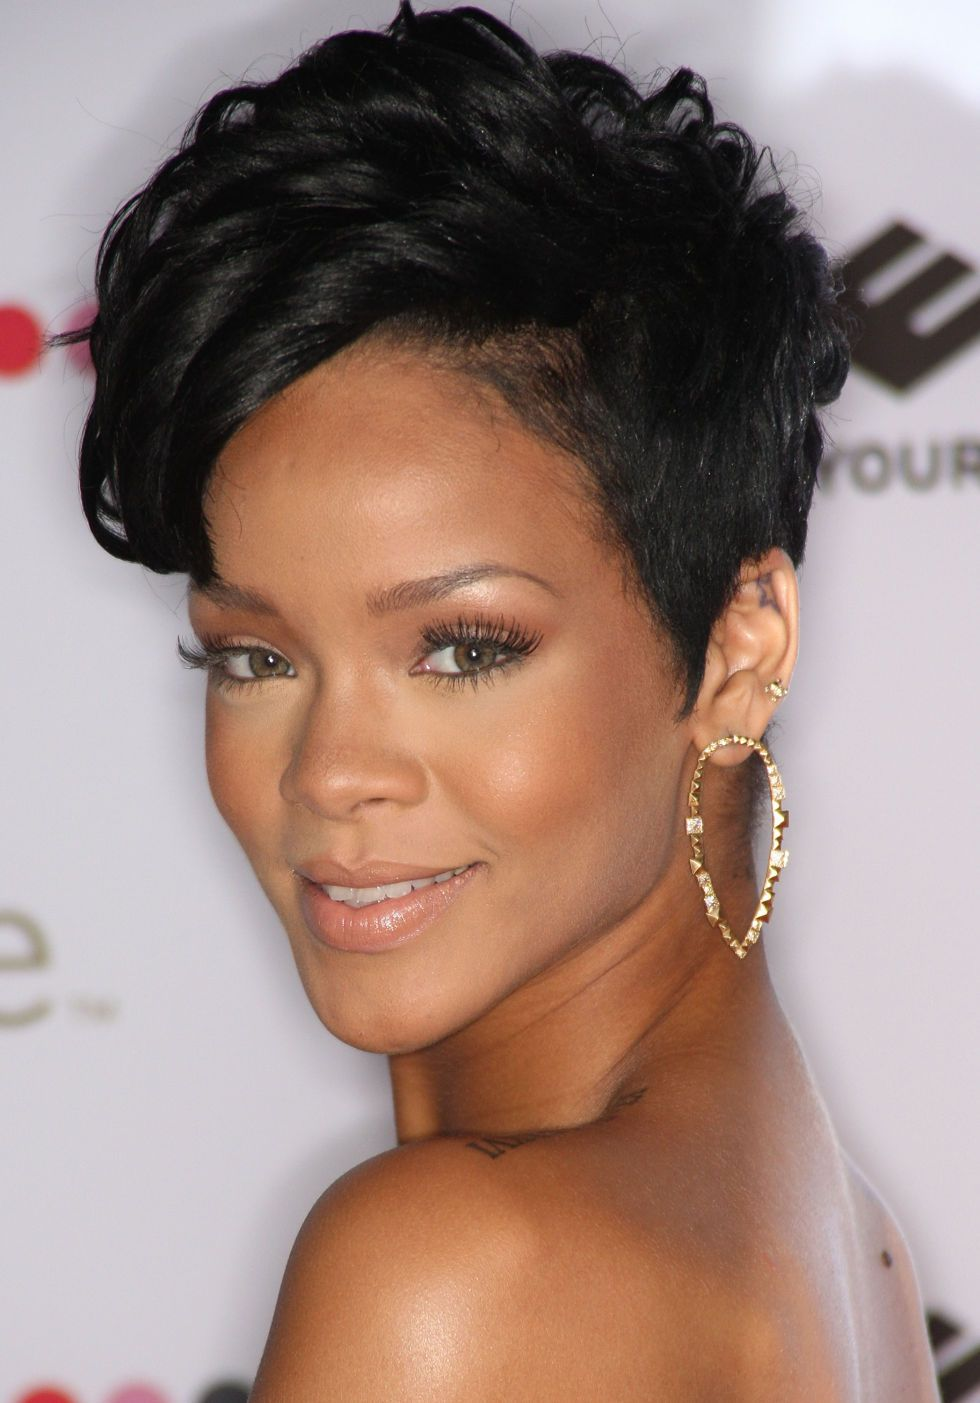 Rihanna Hairstyles Alluring A Complete Guide To All Of Rihanna's Hairstyles  Hair  Pinterest